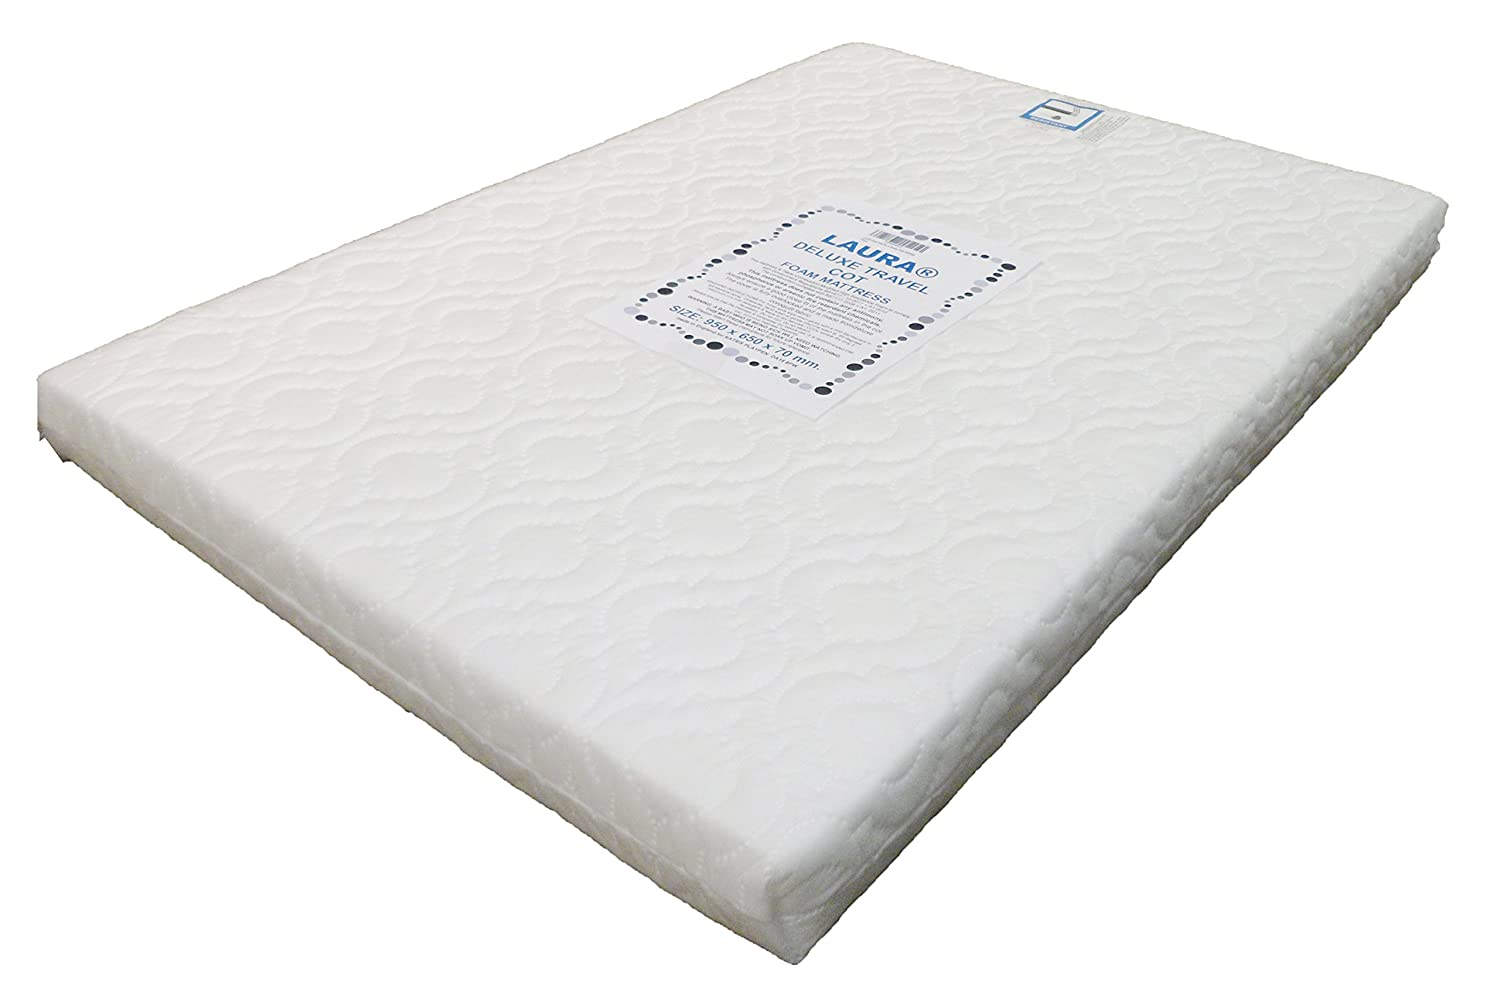 LAURA Extra Thick 95x65cm Travel Cot Mattress 7cm Thick So More Comfy : Reversible : BRITISH MADE With High Grade Density Foam CMHR28 LAURA-95-7